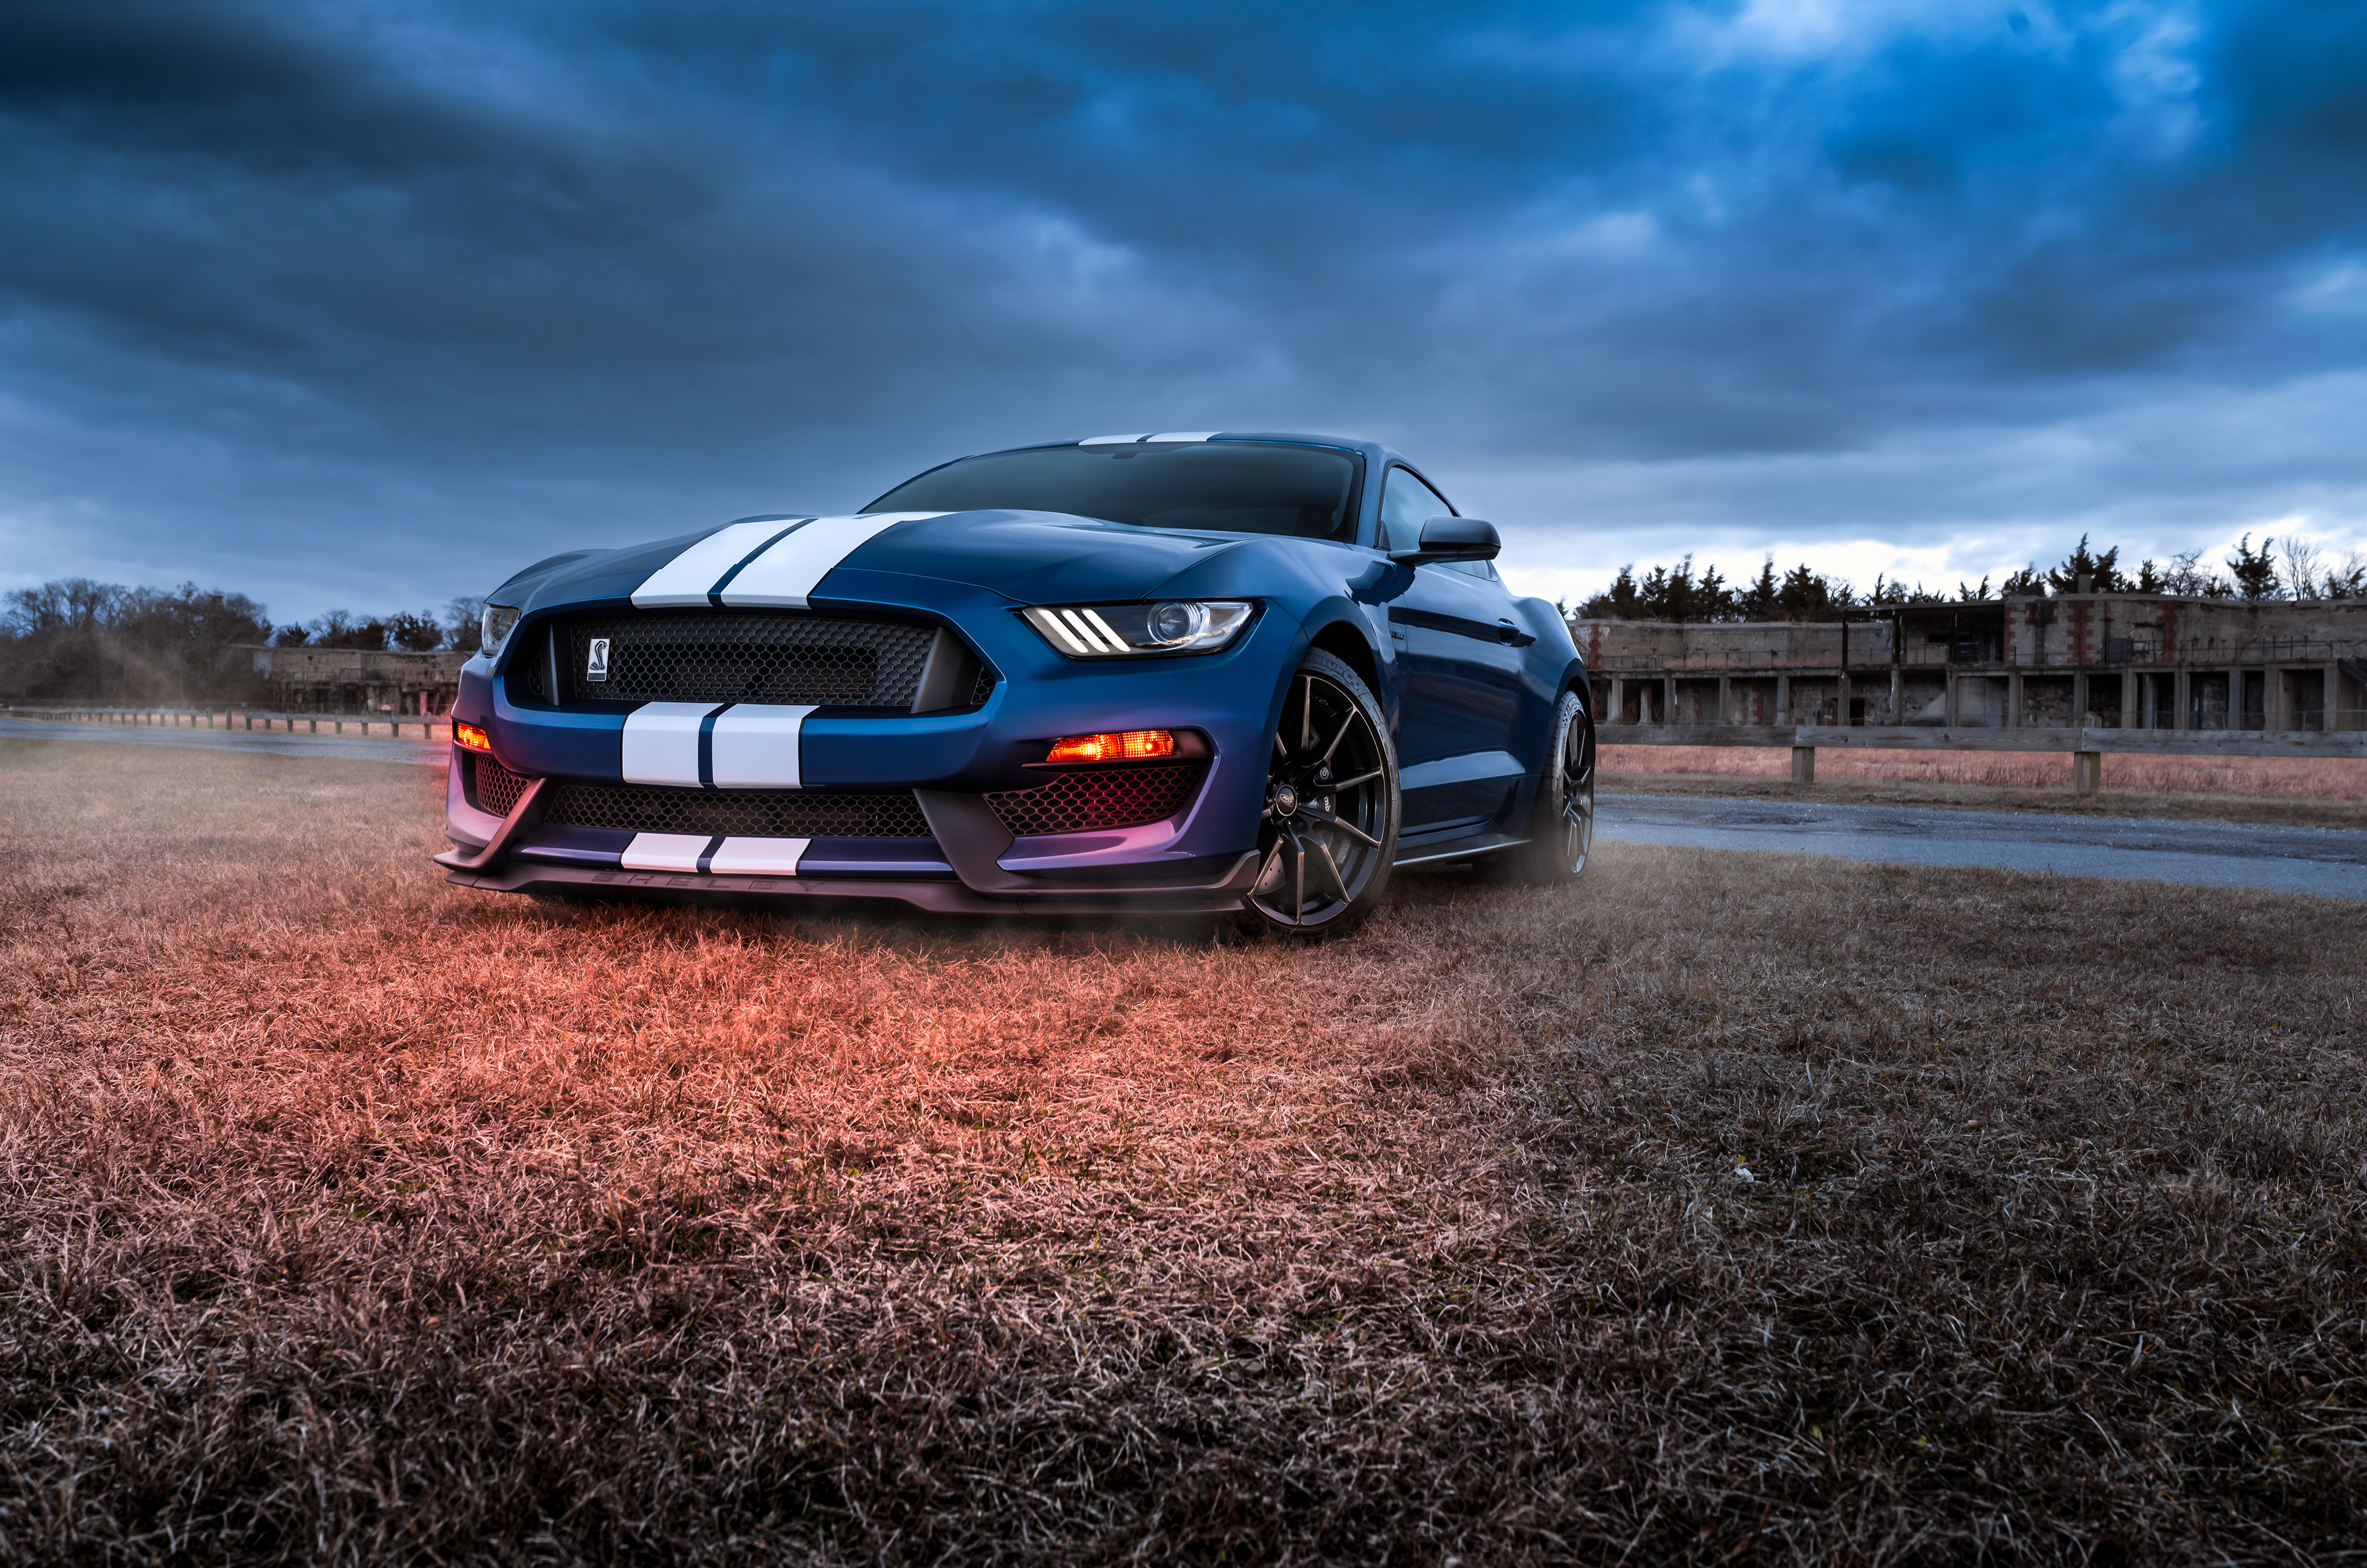 1366x768 4k Ford Mustang Shelby Gt500 1366x768 Resolution Hd 4k Wallpapers Images Backgrounds Photos And Pictures